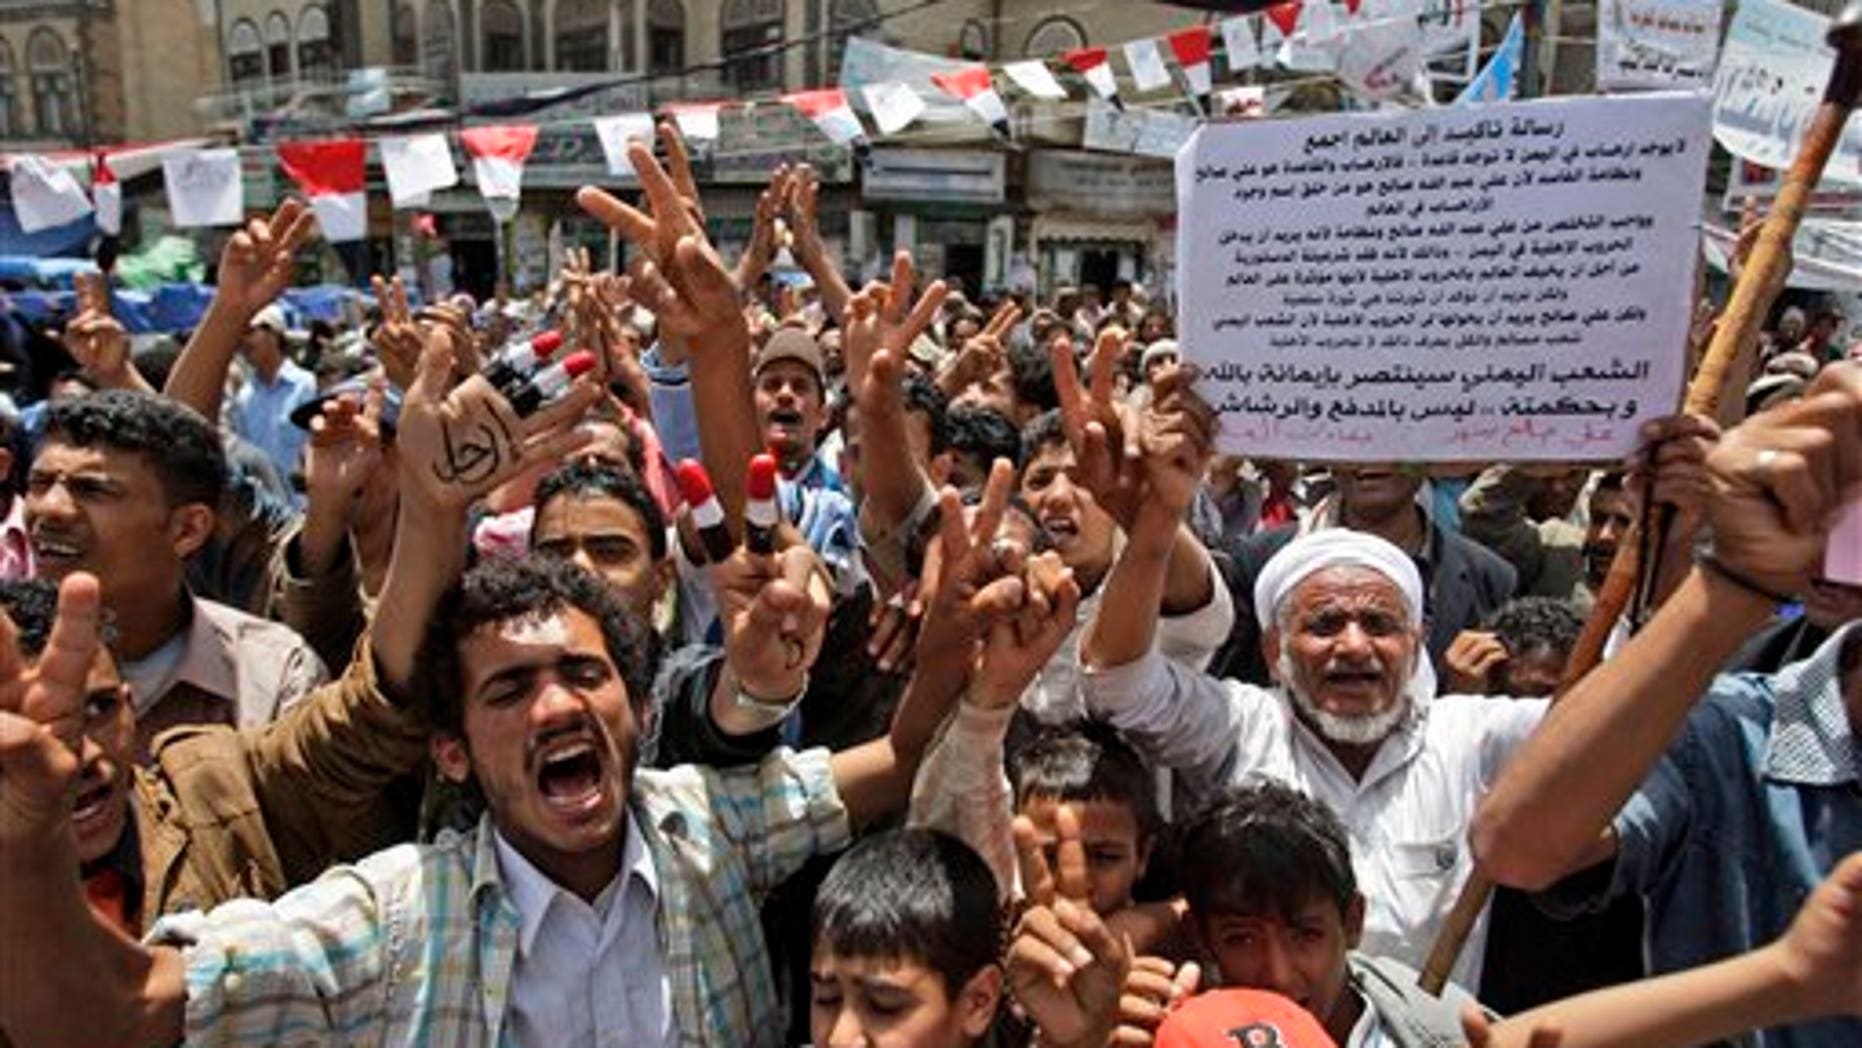 May 29: Anti-government protestors shout slogans during a demonstration demanding the resignation of Yemeni President Ali Abdullah Saleh in Sanaa, Yemen. (AP)